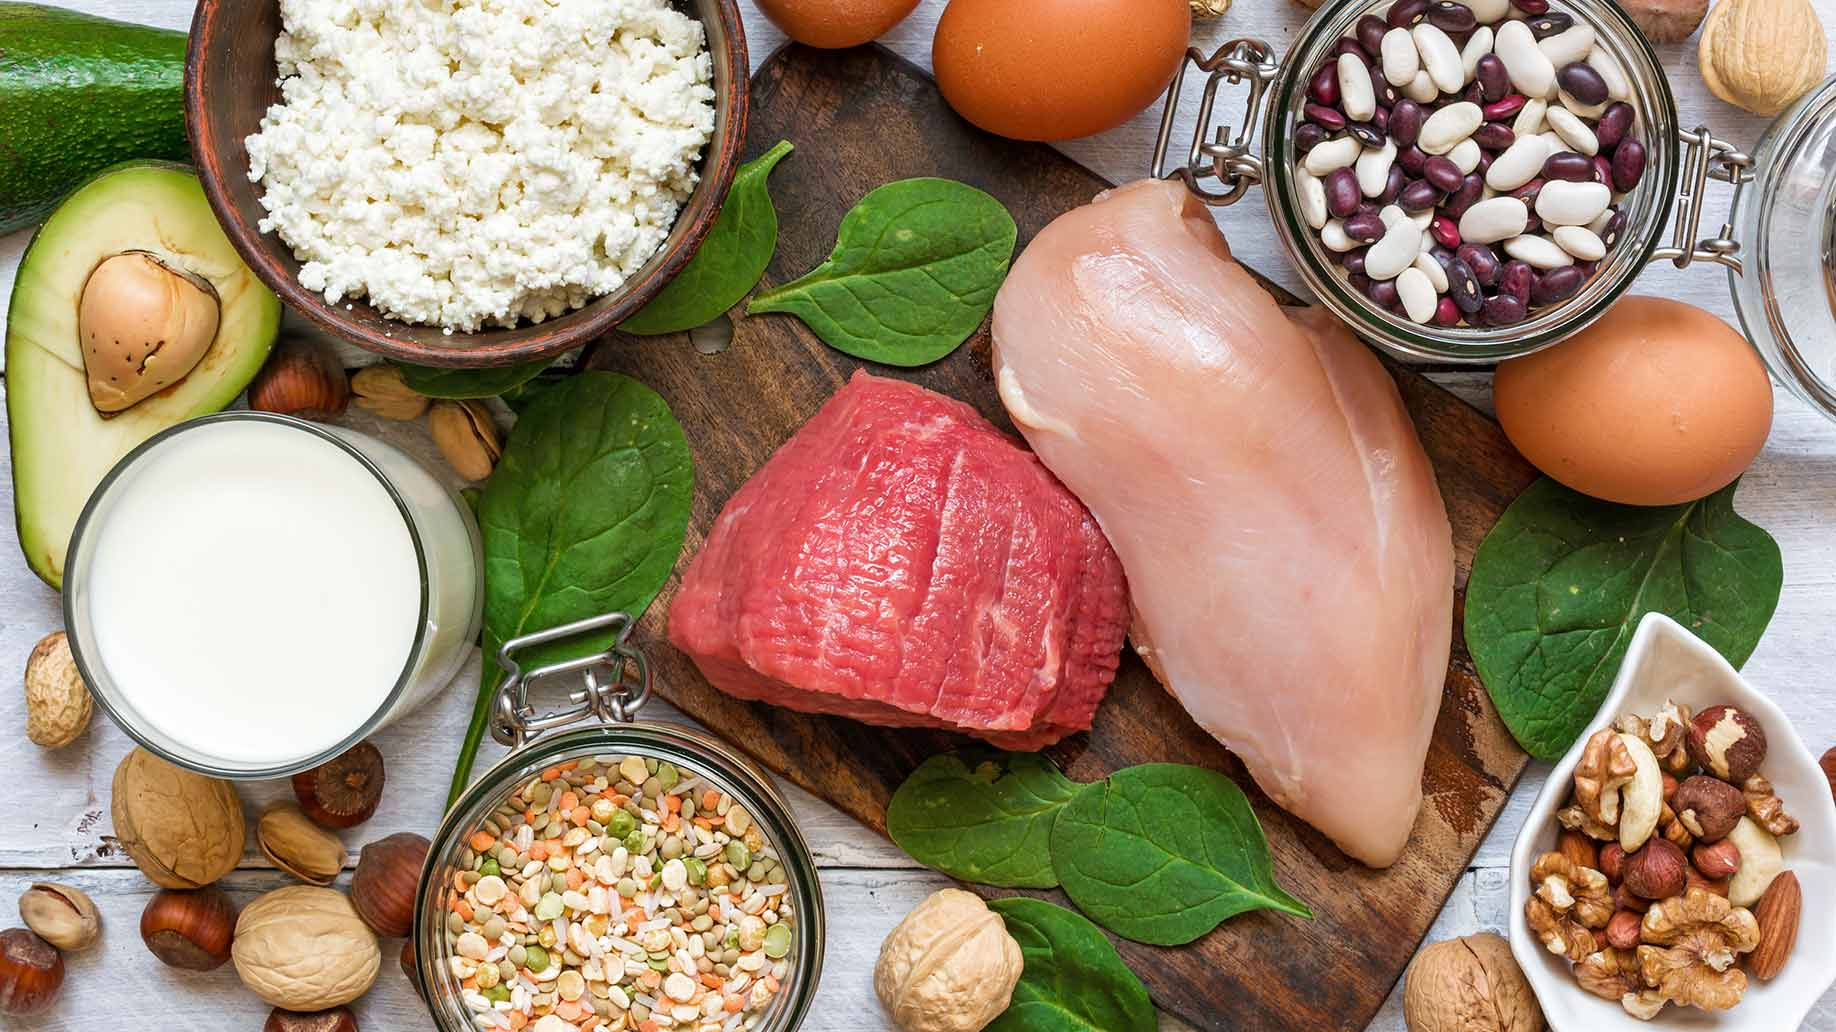 5-htp tryptophan high protein foods meat fish dairy beans nuts seeds insomnia sleep disorder natural remedy aid